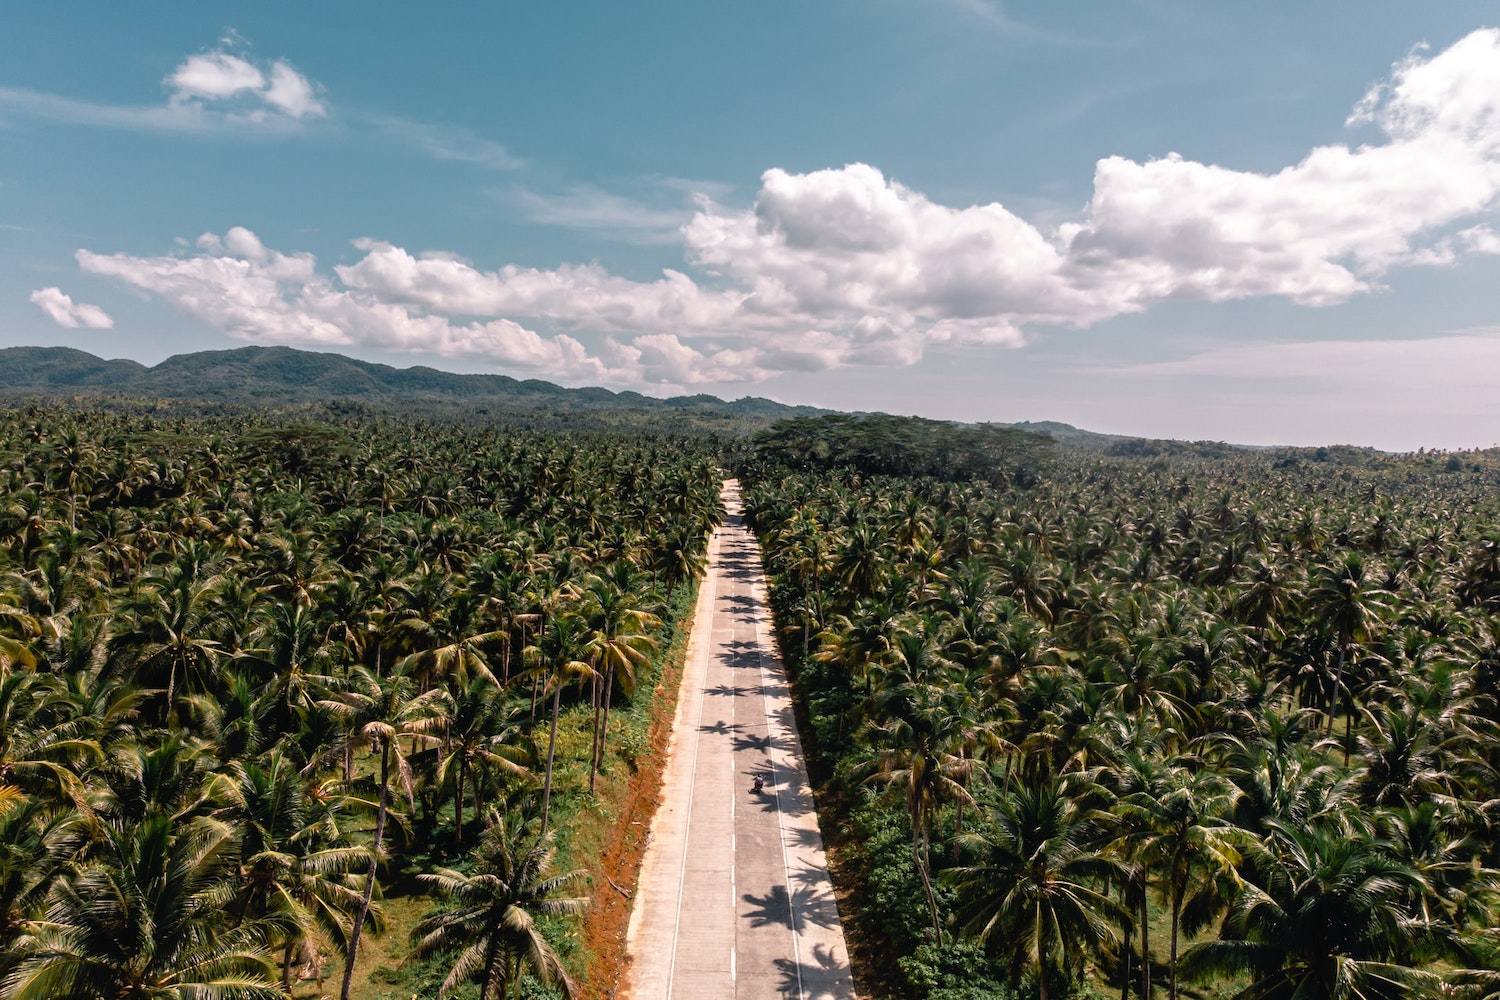 Long straight road full of palm trees, a blue cloudy sky, and mountains in the background